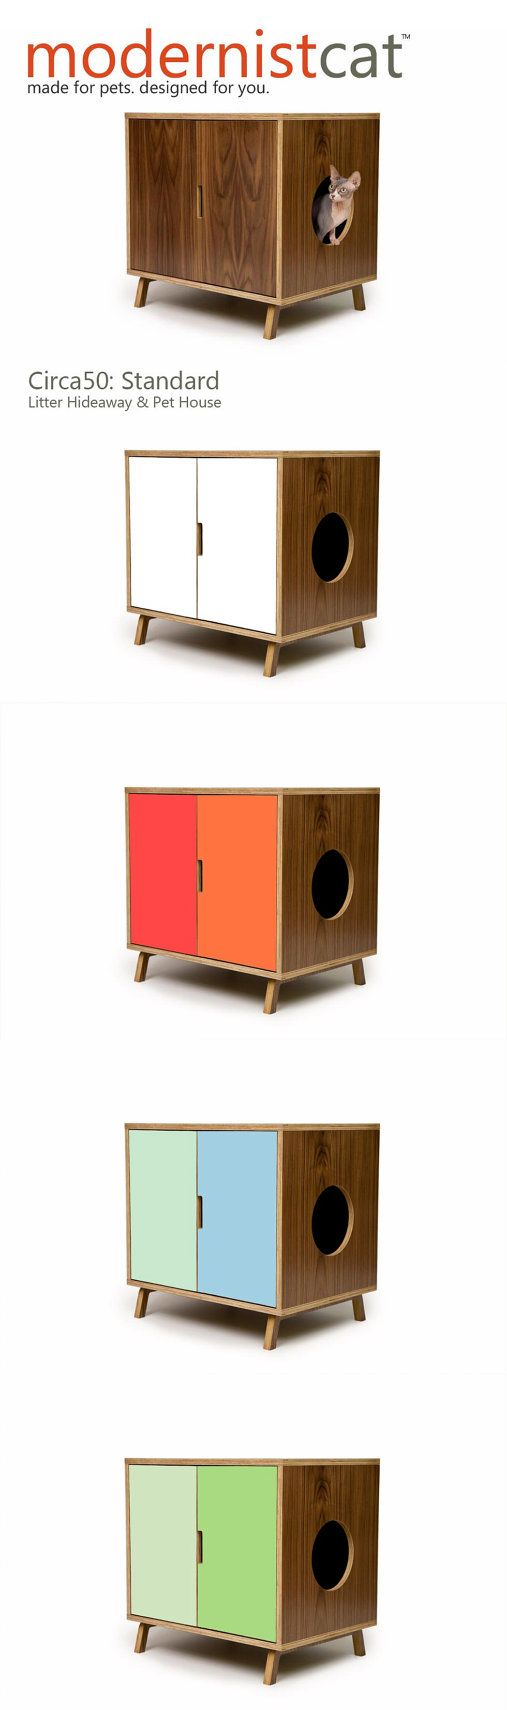 Mid Century Modern Pet Furniture // Dog House // by modernistcat, $599.00